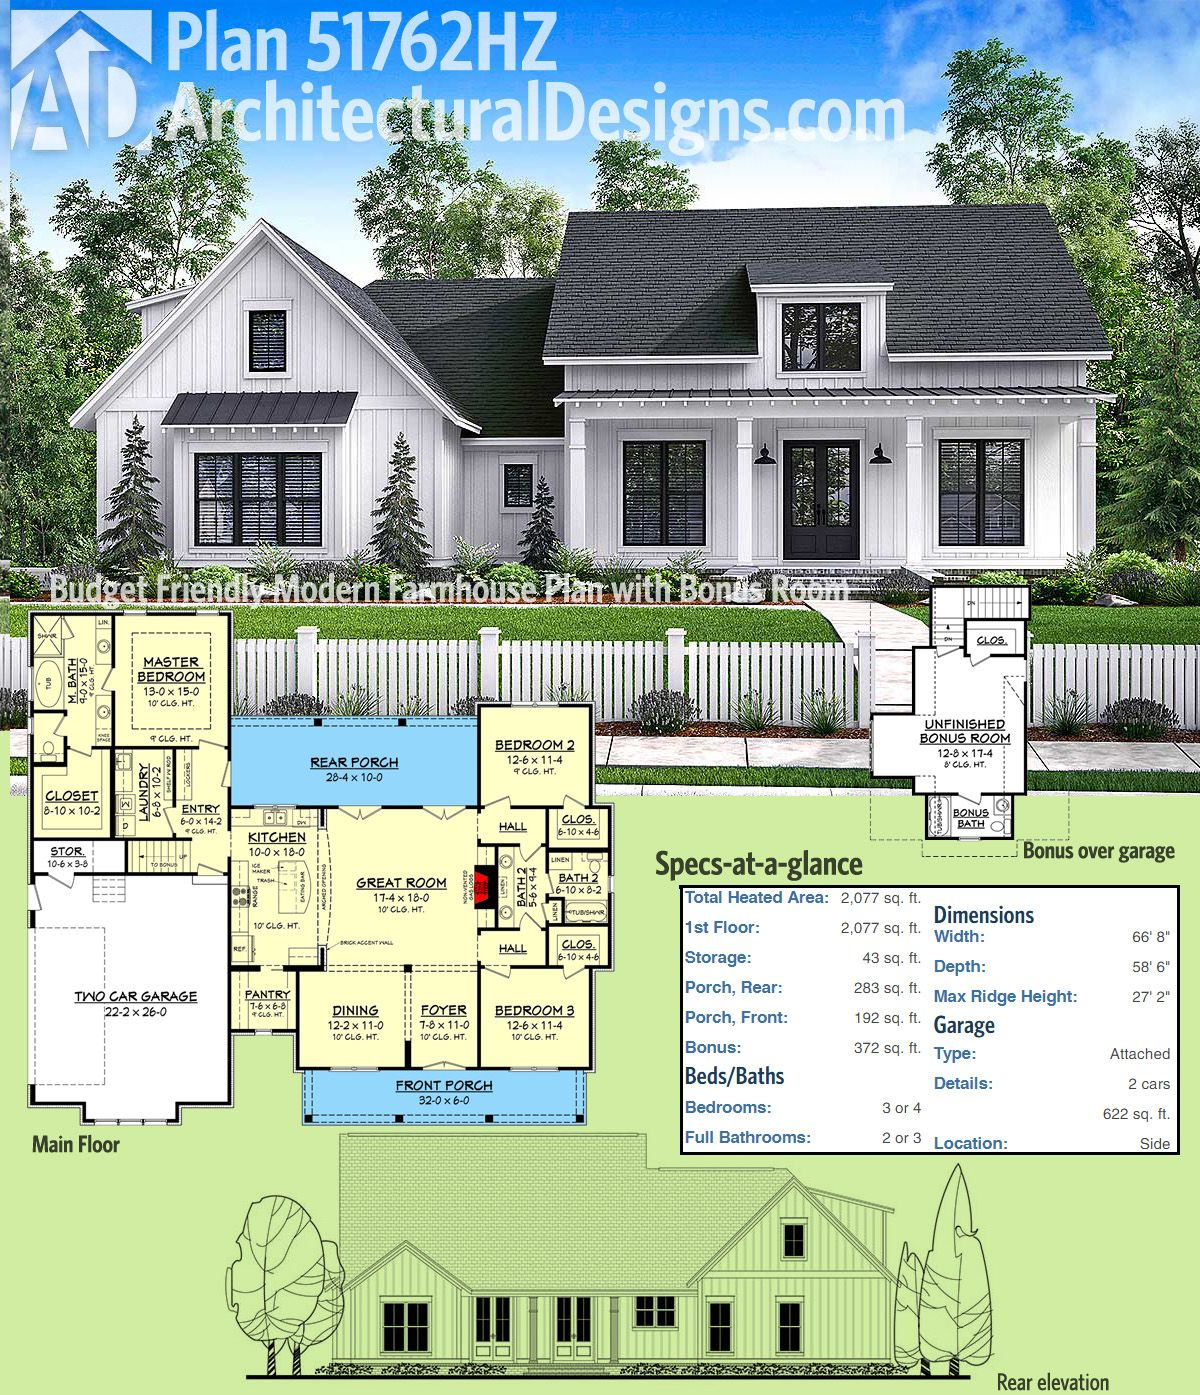 Plan 51762hz budget friendly modern farmhouse plan with for Architectural design home plans